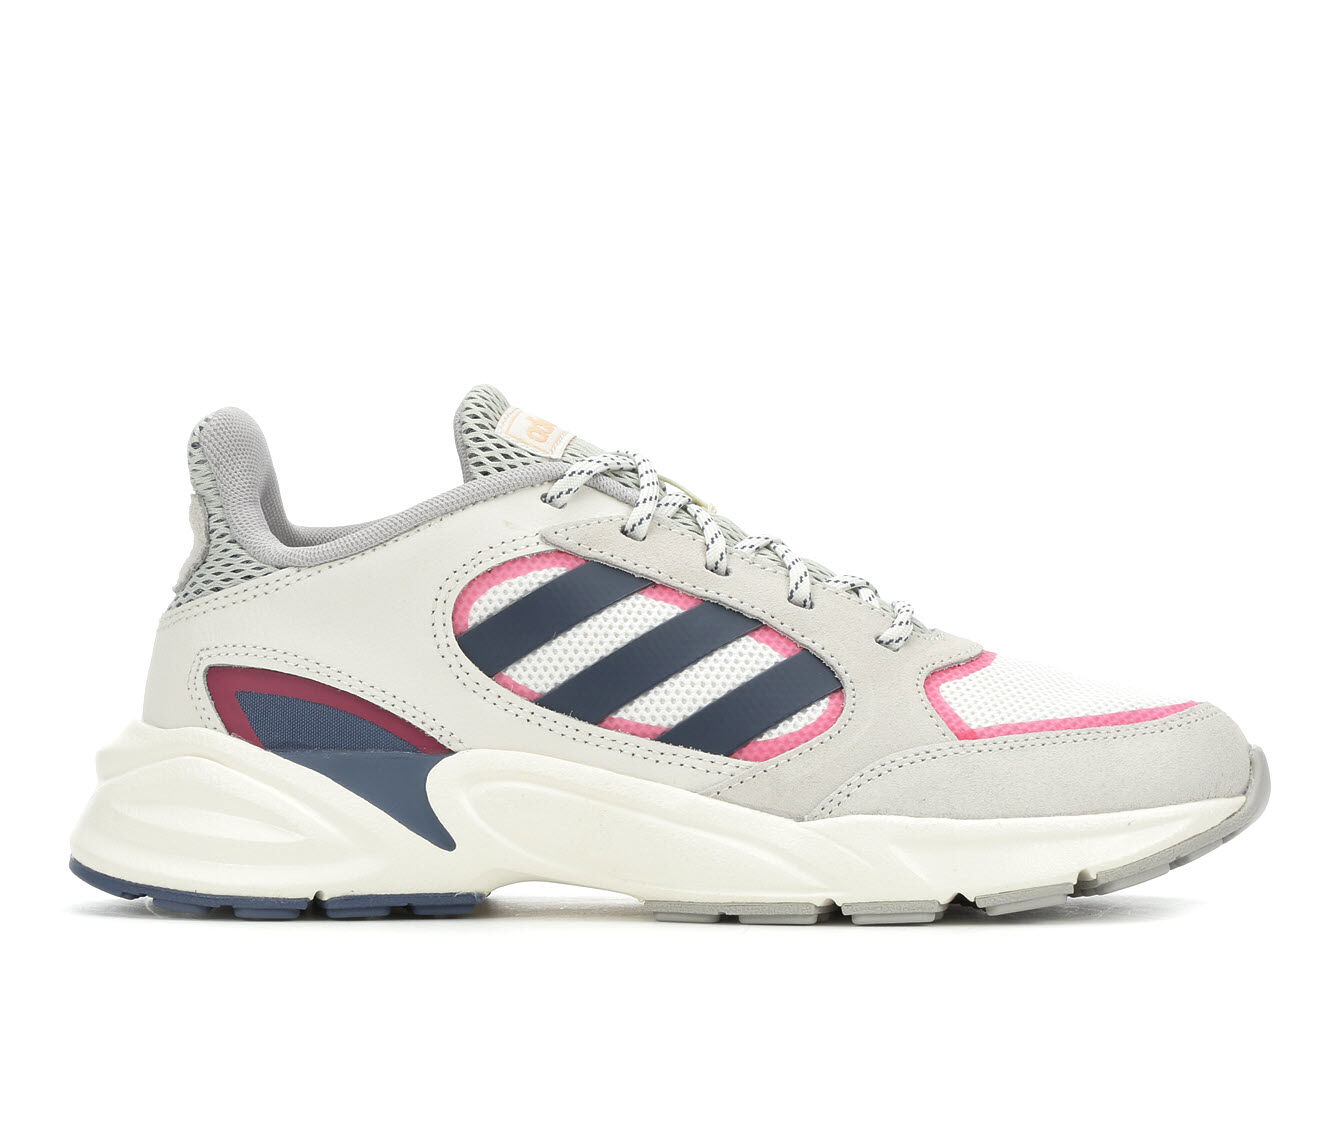 Women's Adidas 90S Valasion Sneakers White/Ink/Pink